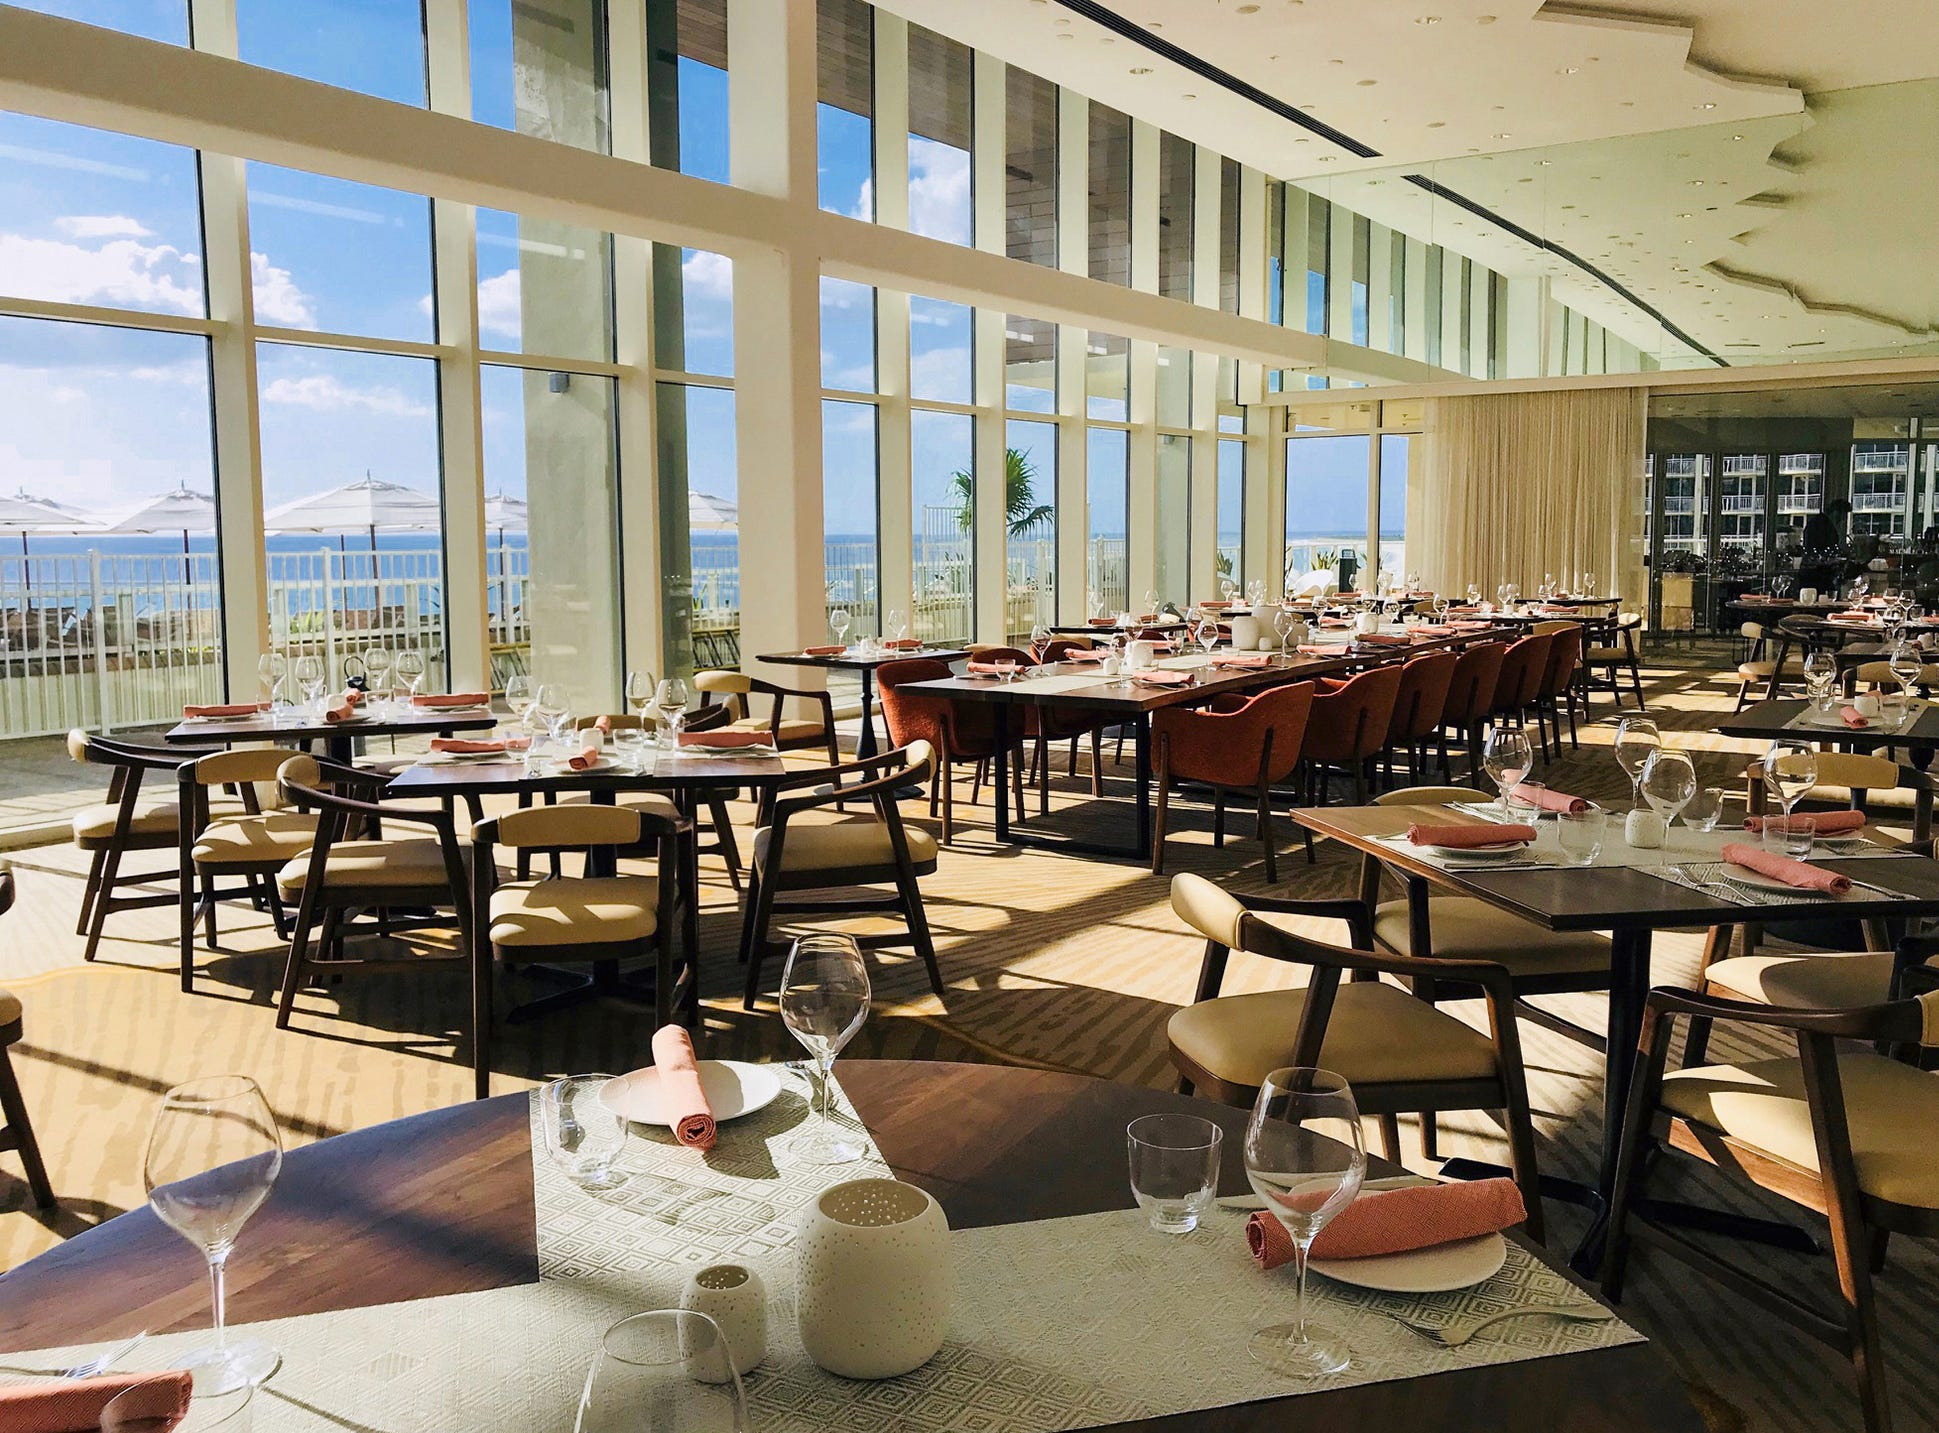 The main dining room of Tesoro, which opened in October 2018 at JW Marriott Marco Island Beach Resort.